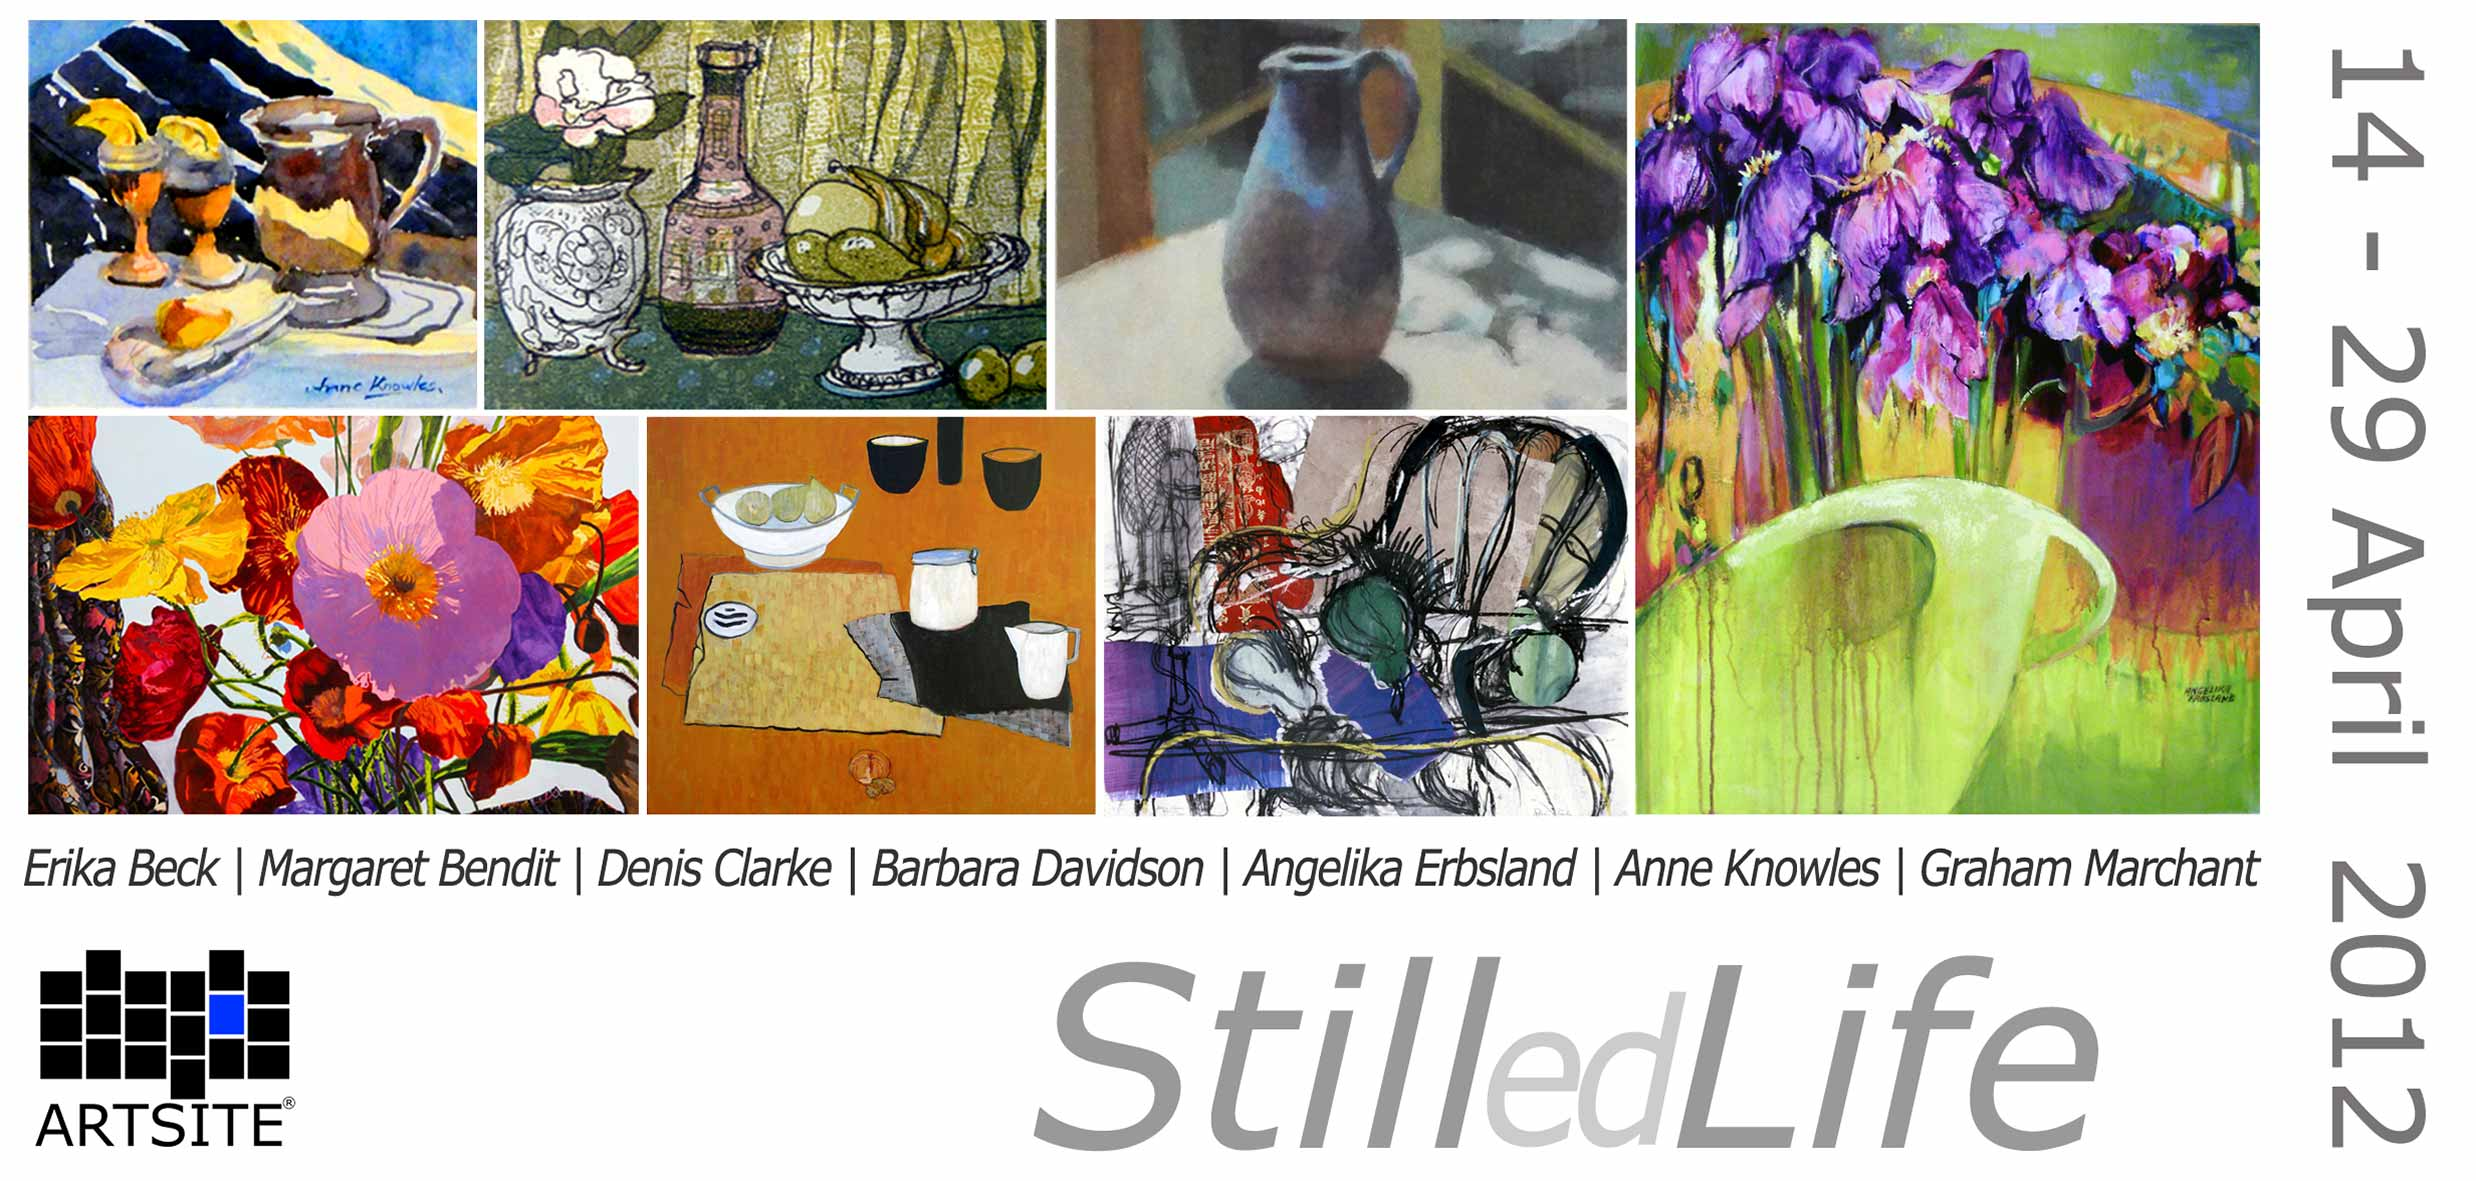 Stilled Life - An exhibition of Still life Paintings and Works on Paper. Artsite Gallery 14 - 29 April 2012<